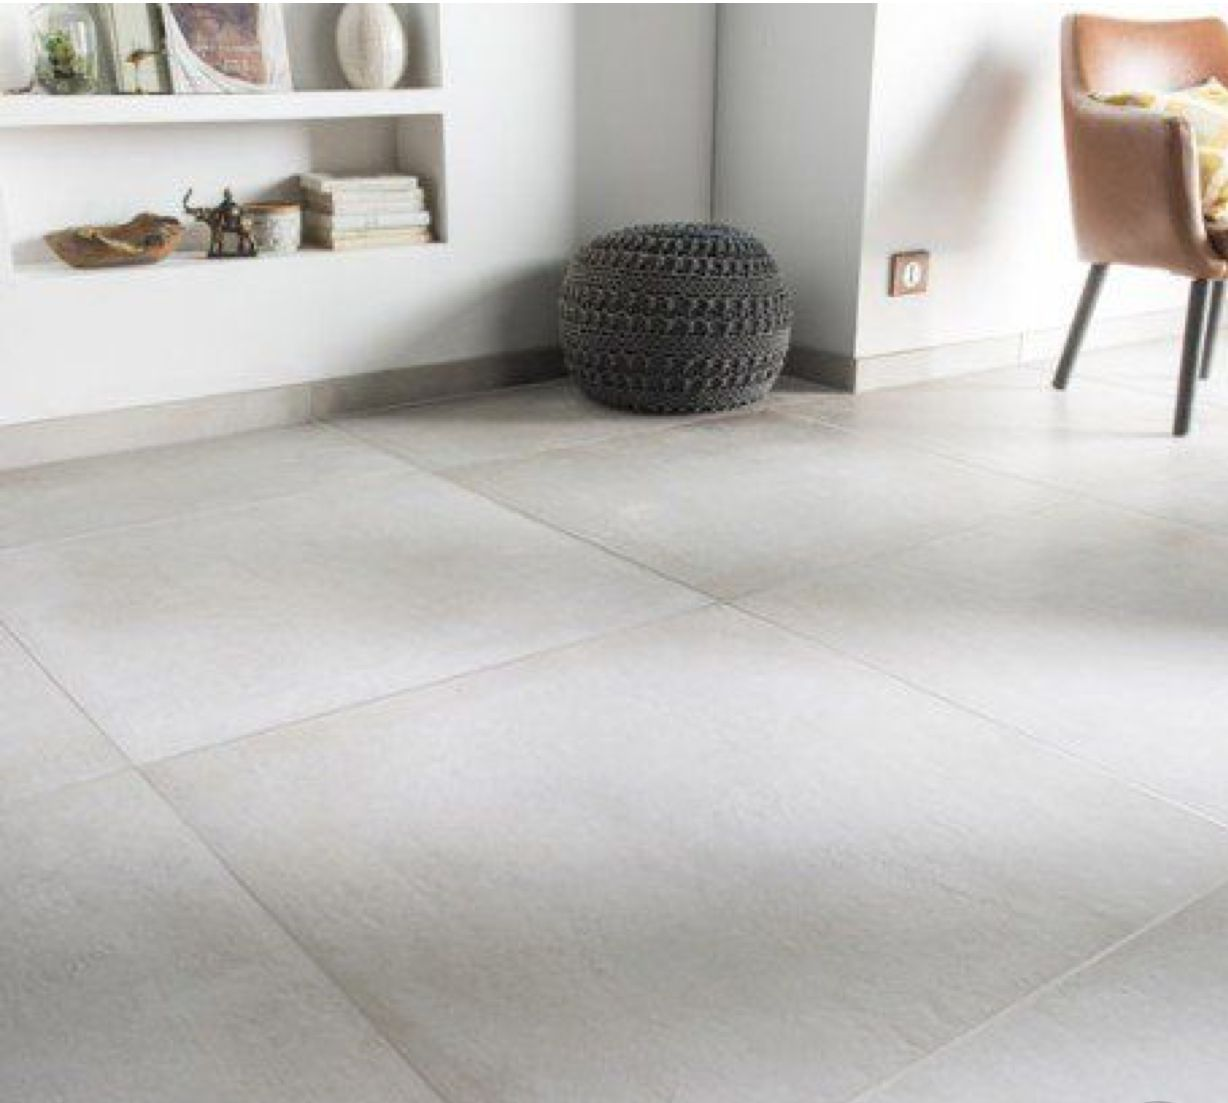 Bottom Floor Flooring Avec Images Carrelage Interieur